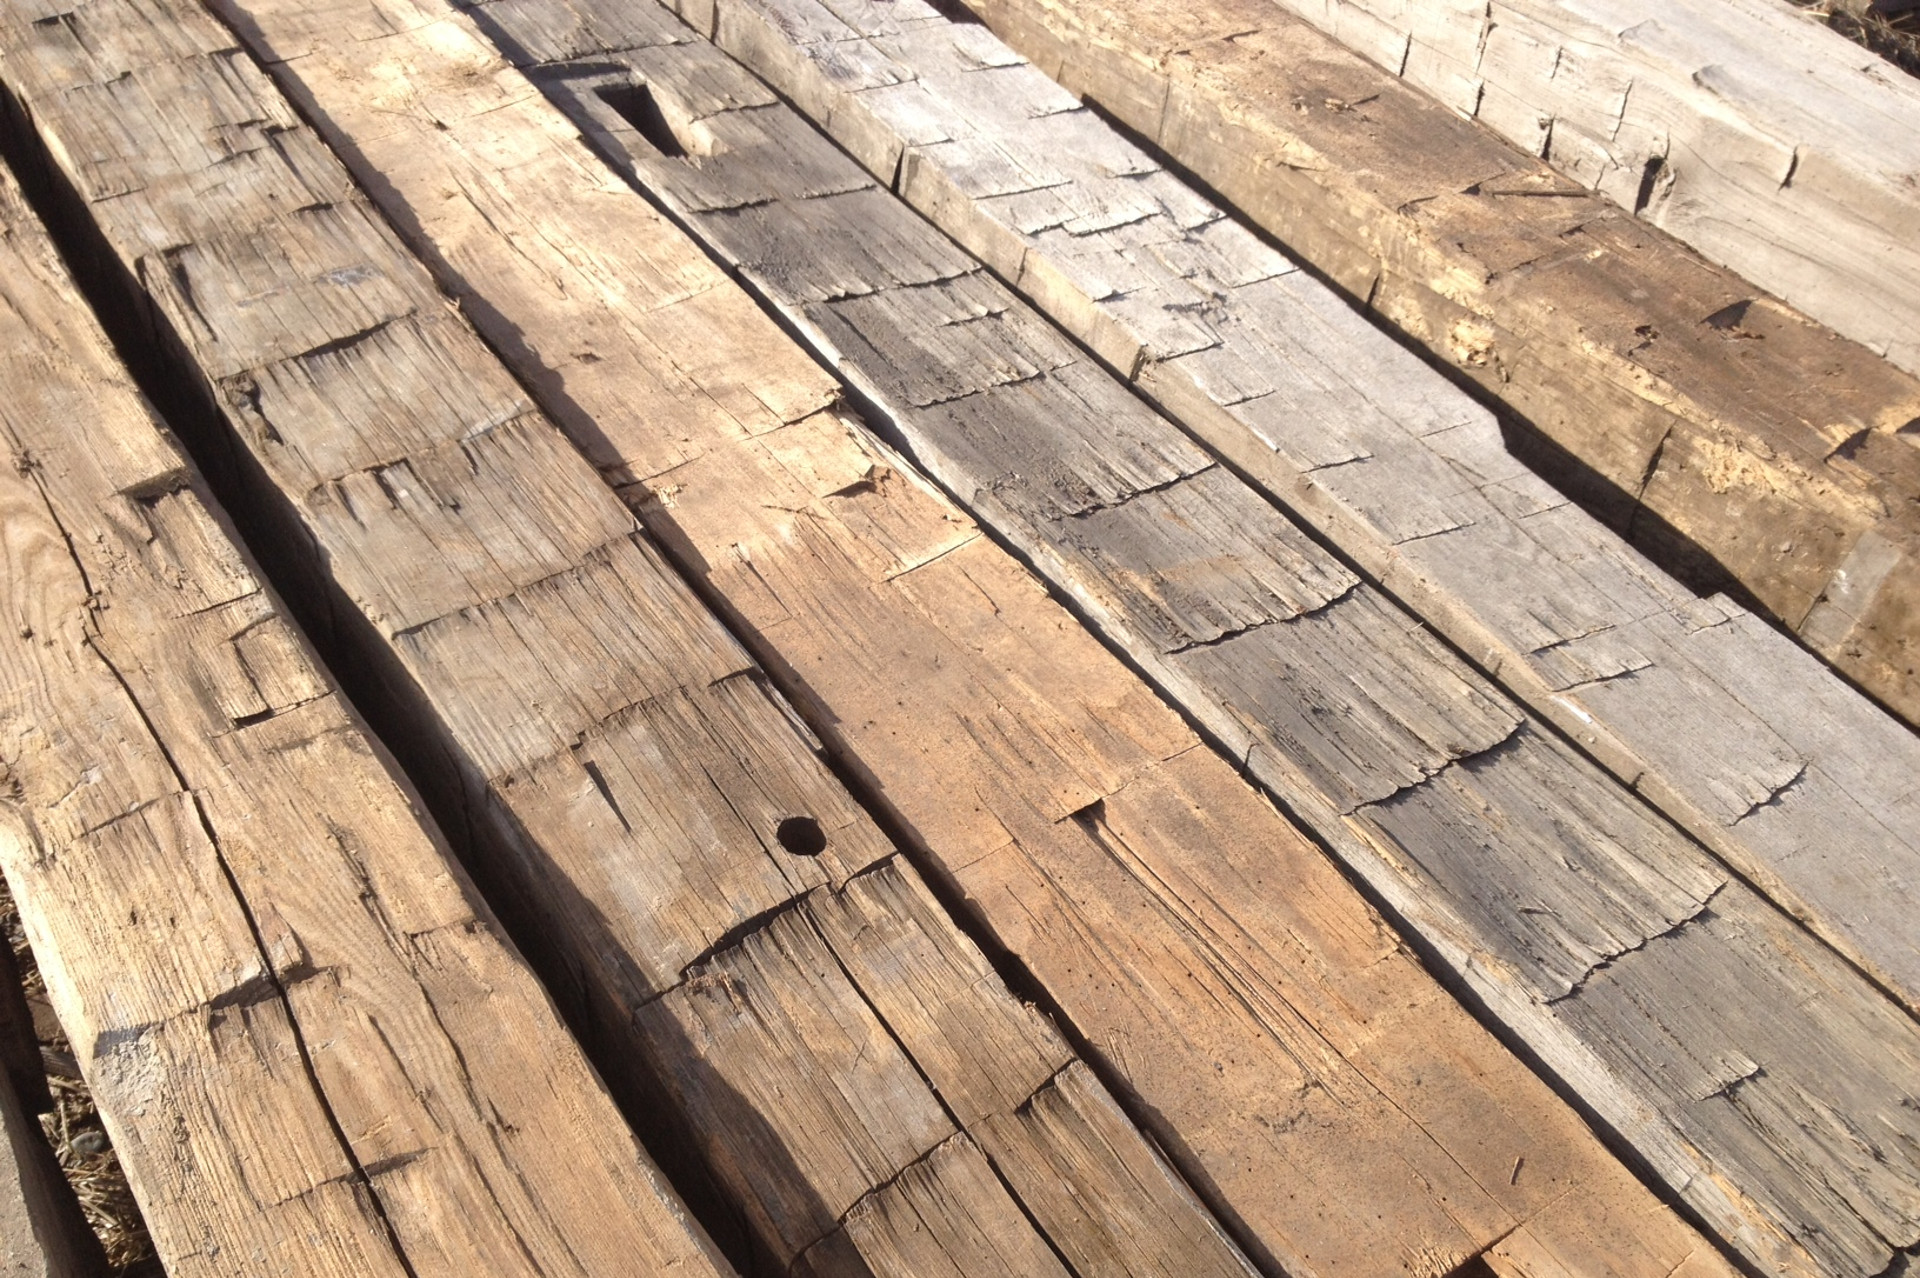 Reclaimed lumber hemlock reclaimed lumber thickness oak for Recycled wood siding